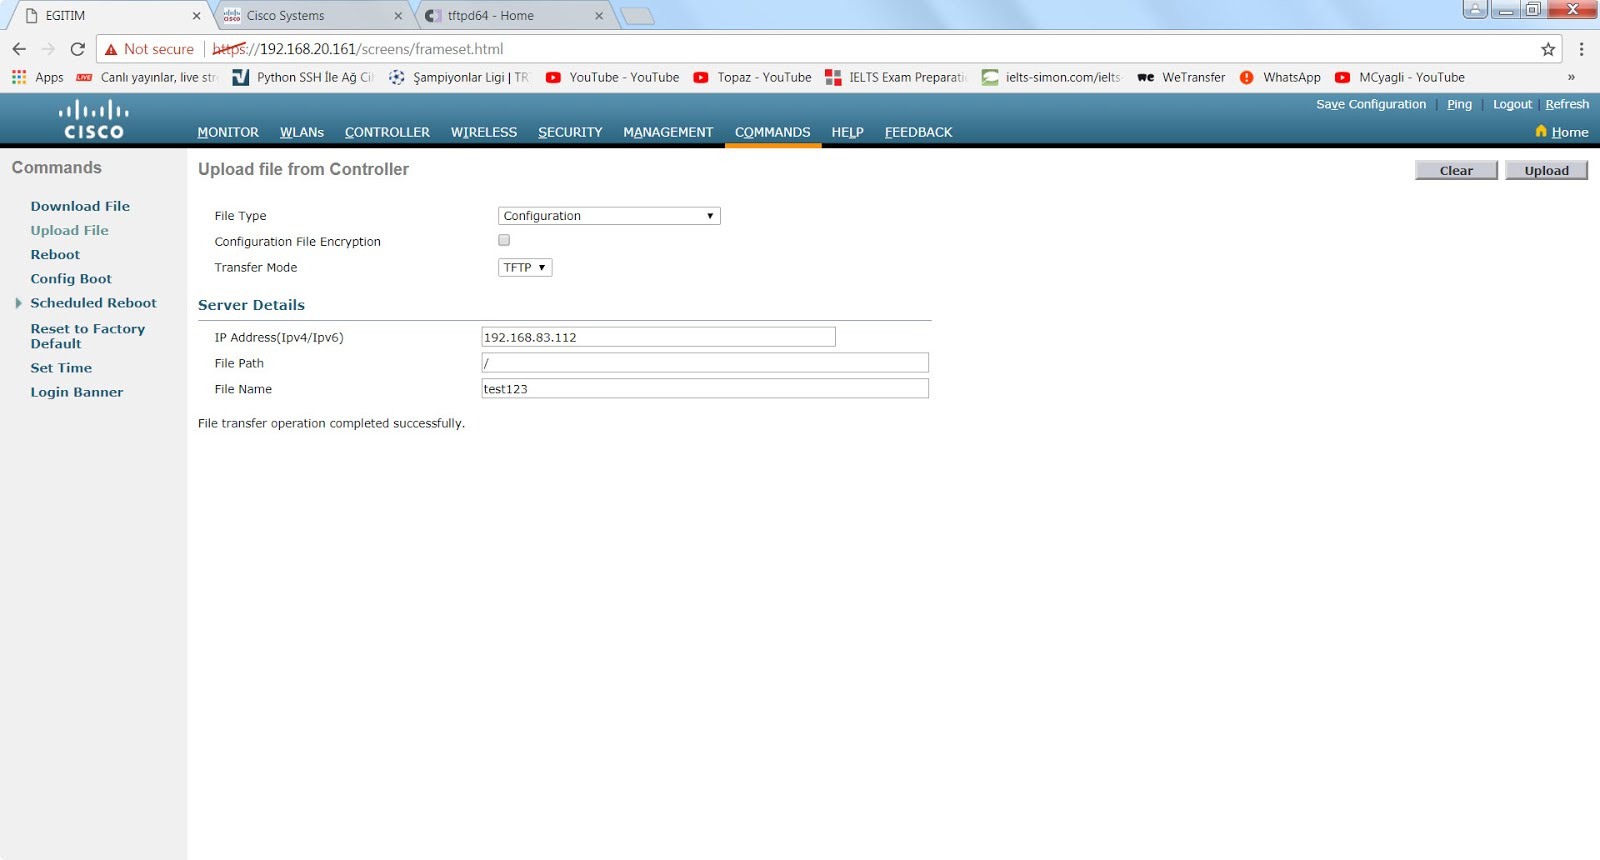 This is My Network Configuration Page and Please Feel Free